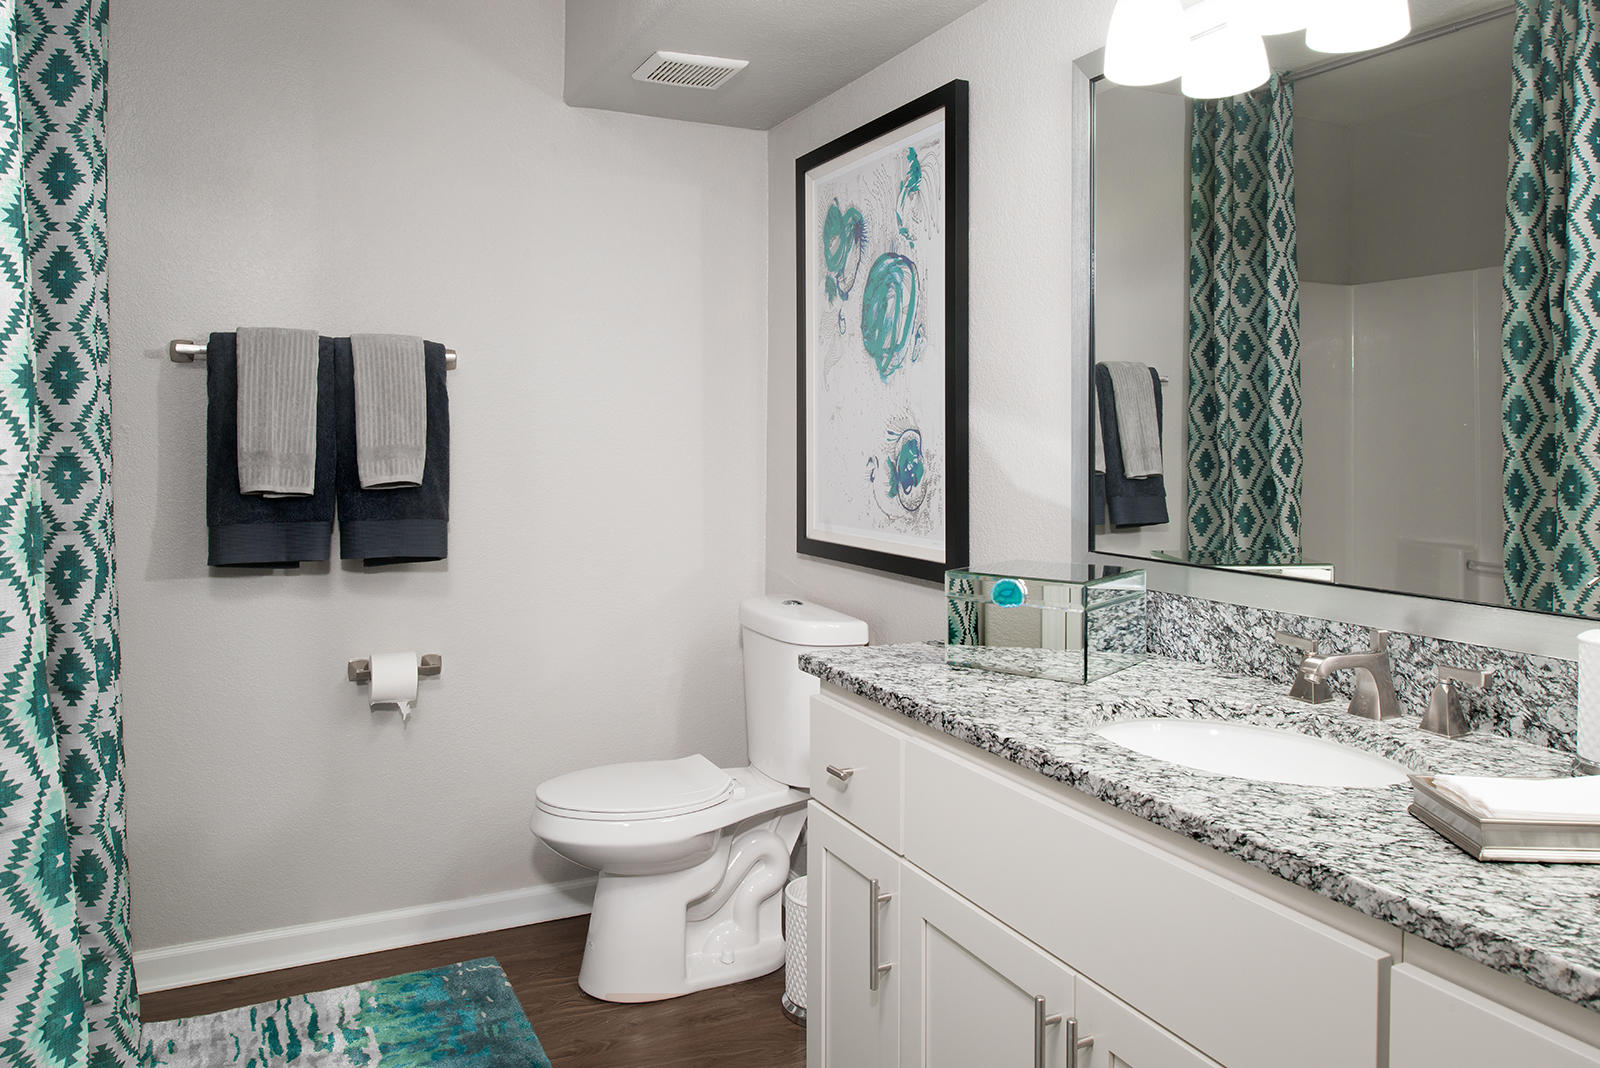 Attiva Valley View Active Living Apartments by Cortland image 3